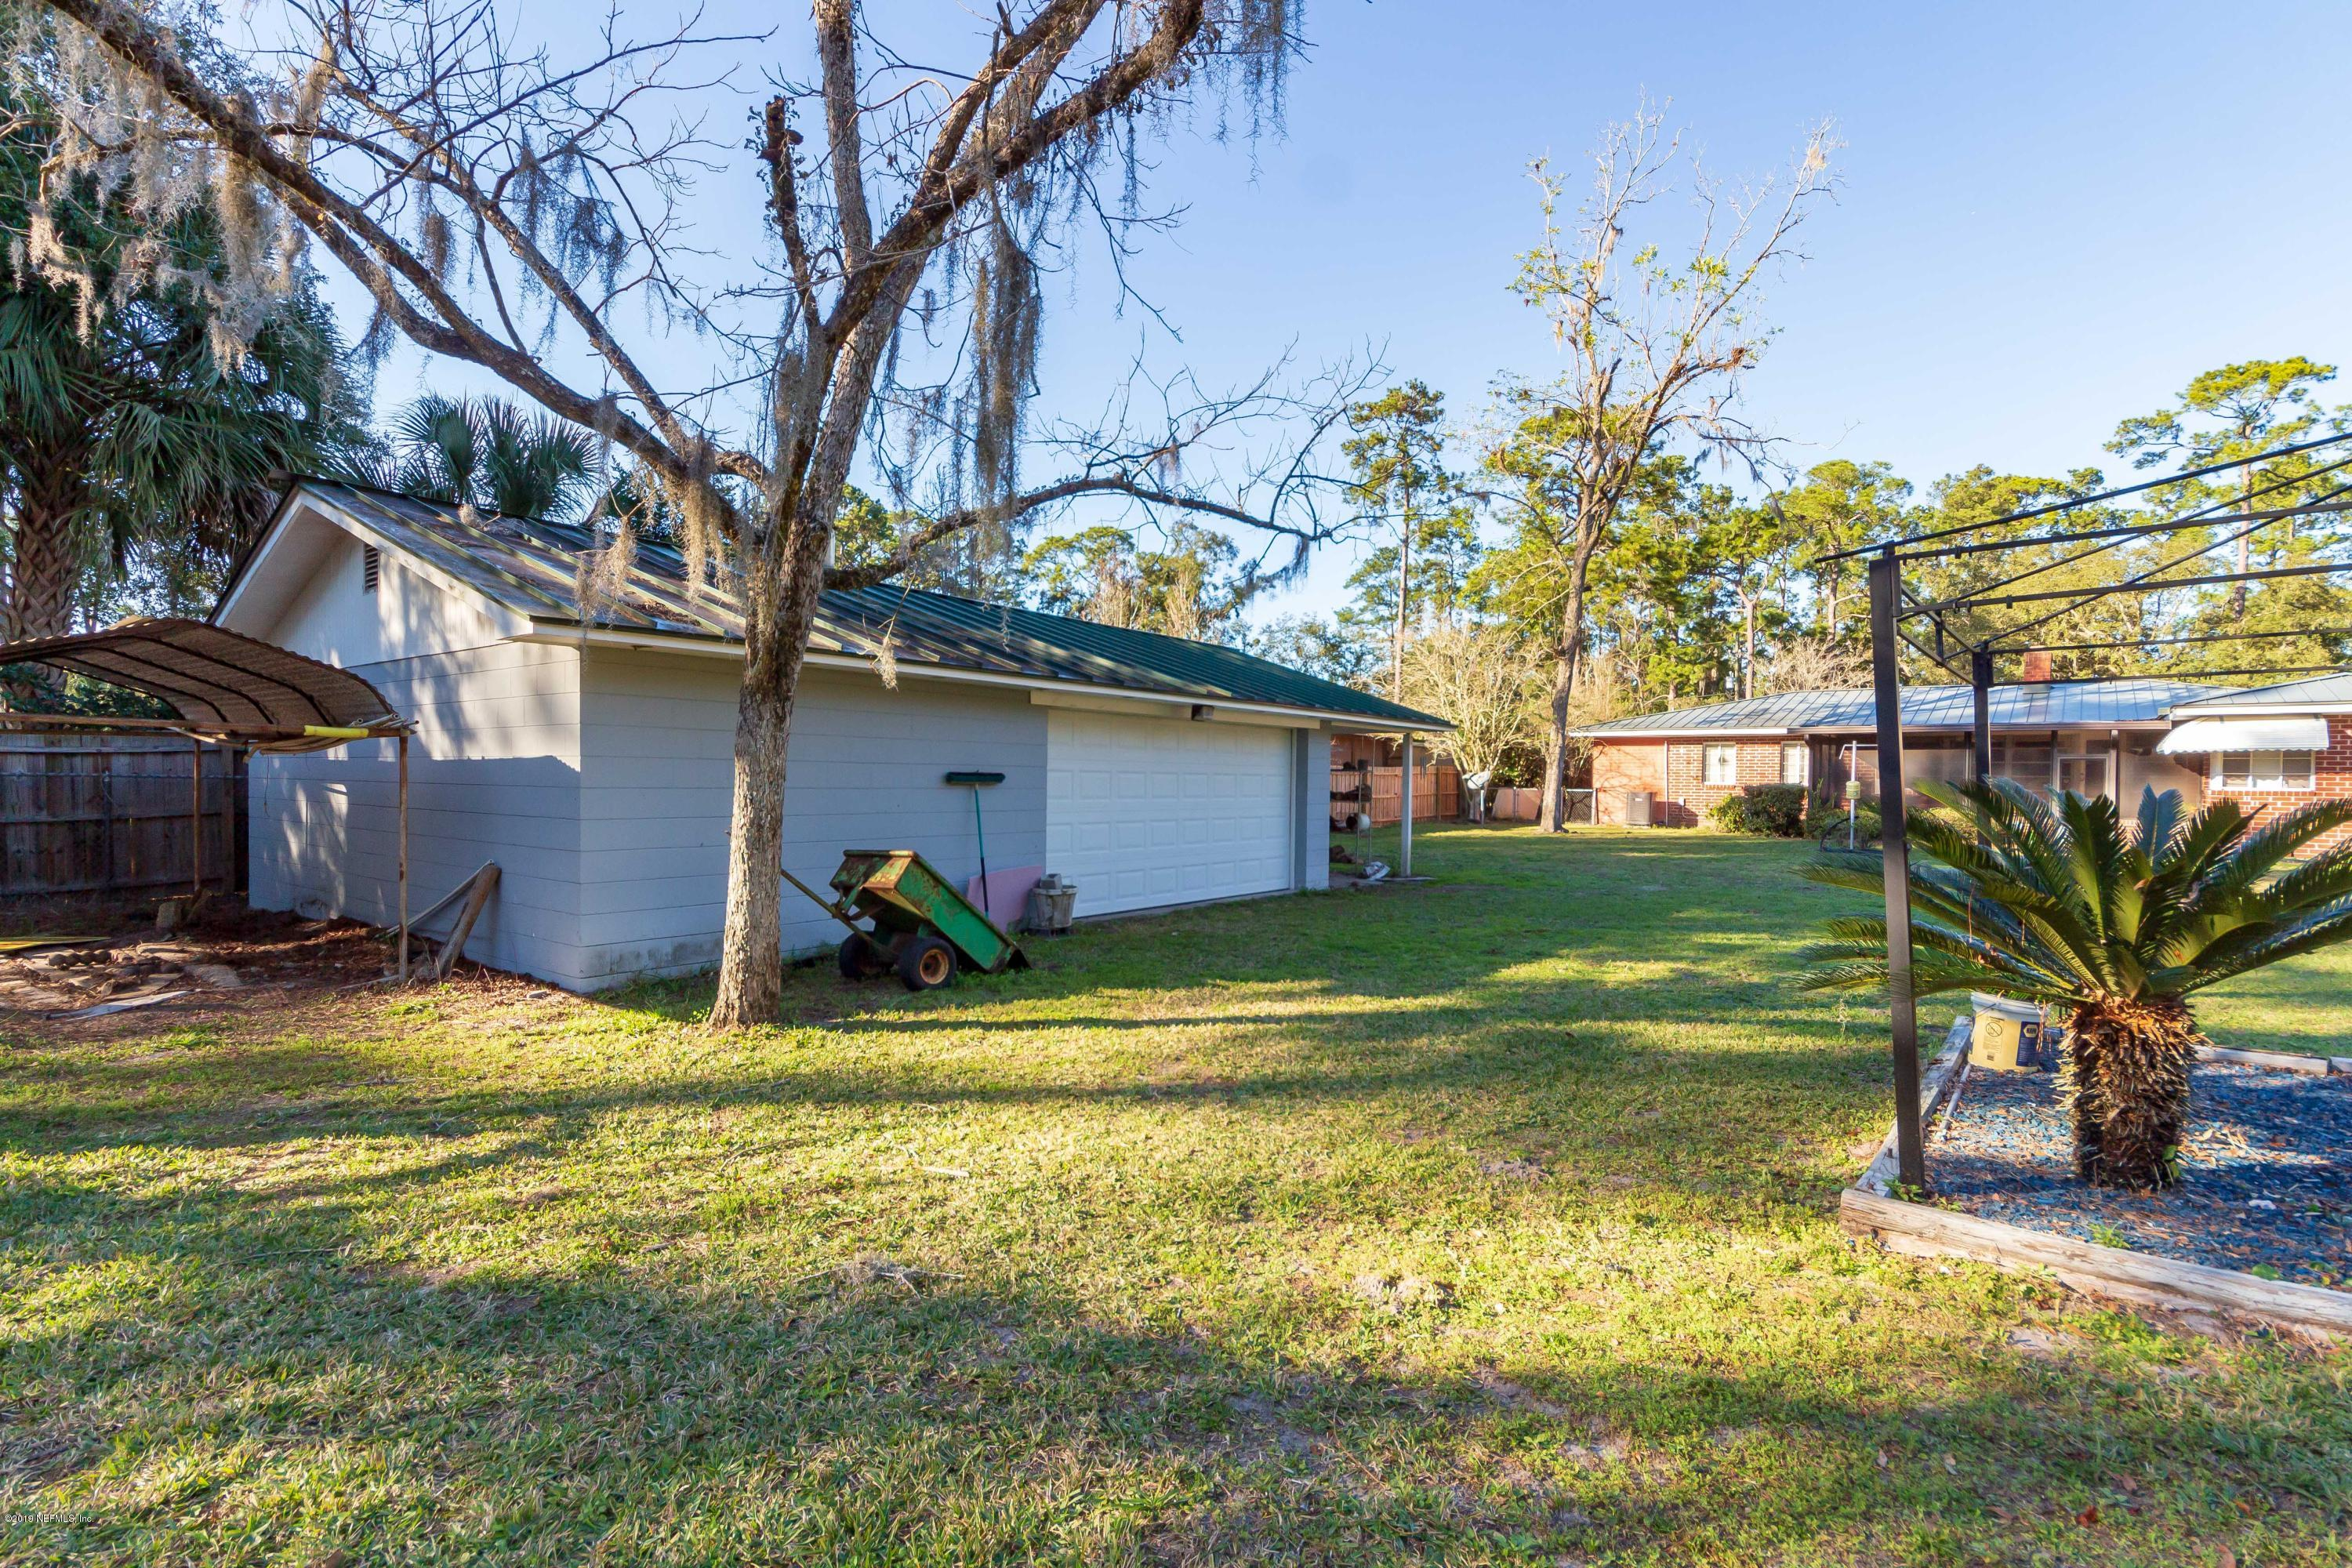 6509 HYDE GROVE, JACKSONVILLE, FLORIDA 32210, 3 Bedrooms Bedrooms, ,2 BathroomsBathrooms,Residential - single family,For sale,HYDE GROVE,974209